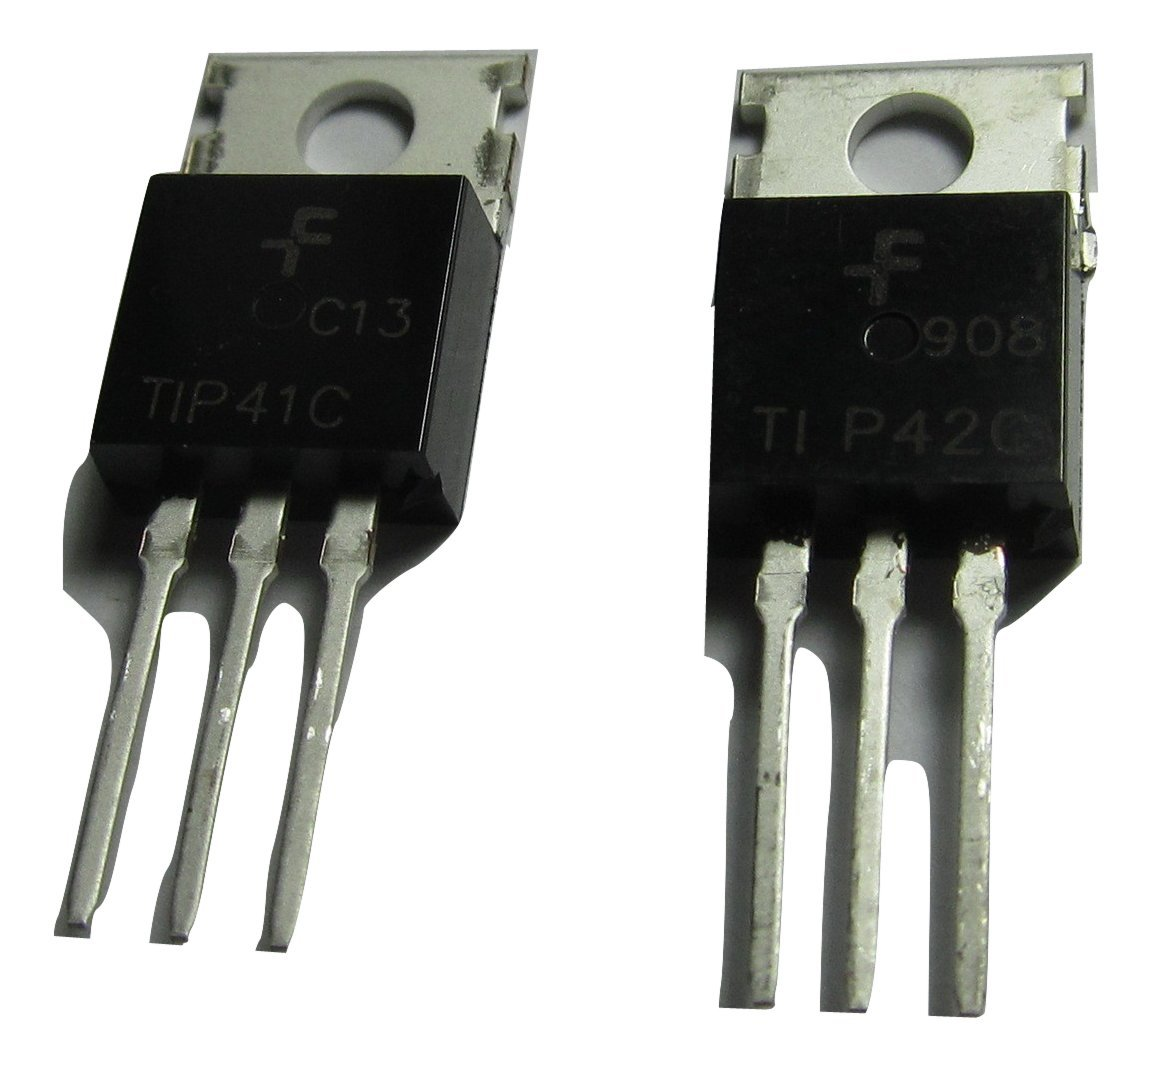 5 Pcs Of Tip41c Npn Tip42c Pnp Pairs 60w Transistored Power Amplifier Circuit Transistor 6a 100v To 220 Fsc Electronics